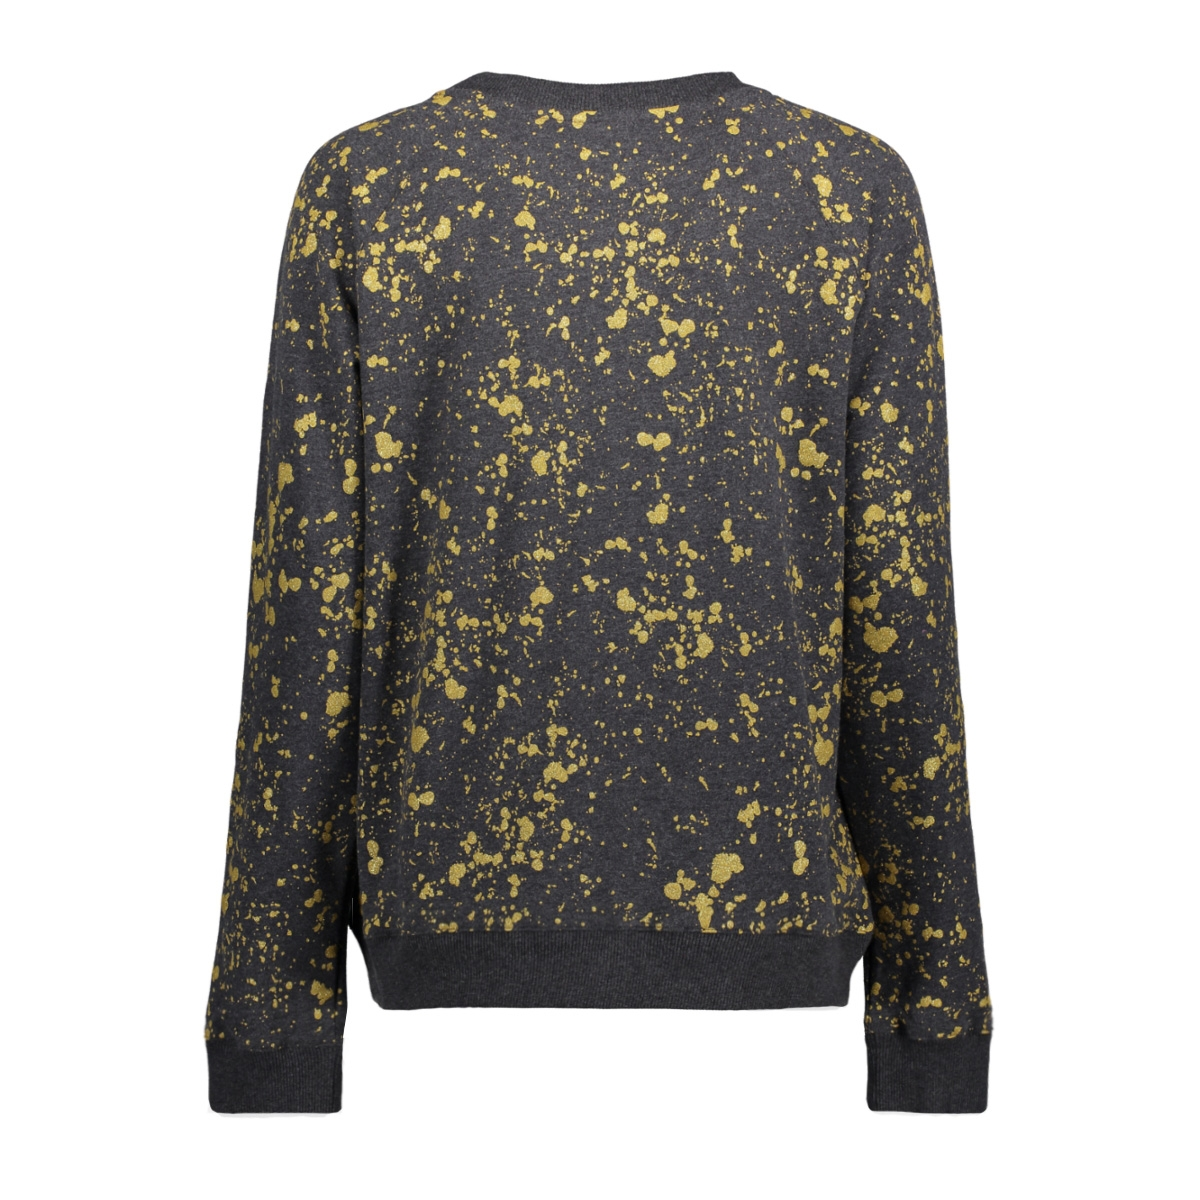 20-804-7103 10 days sweater antra melee